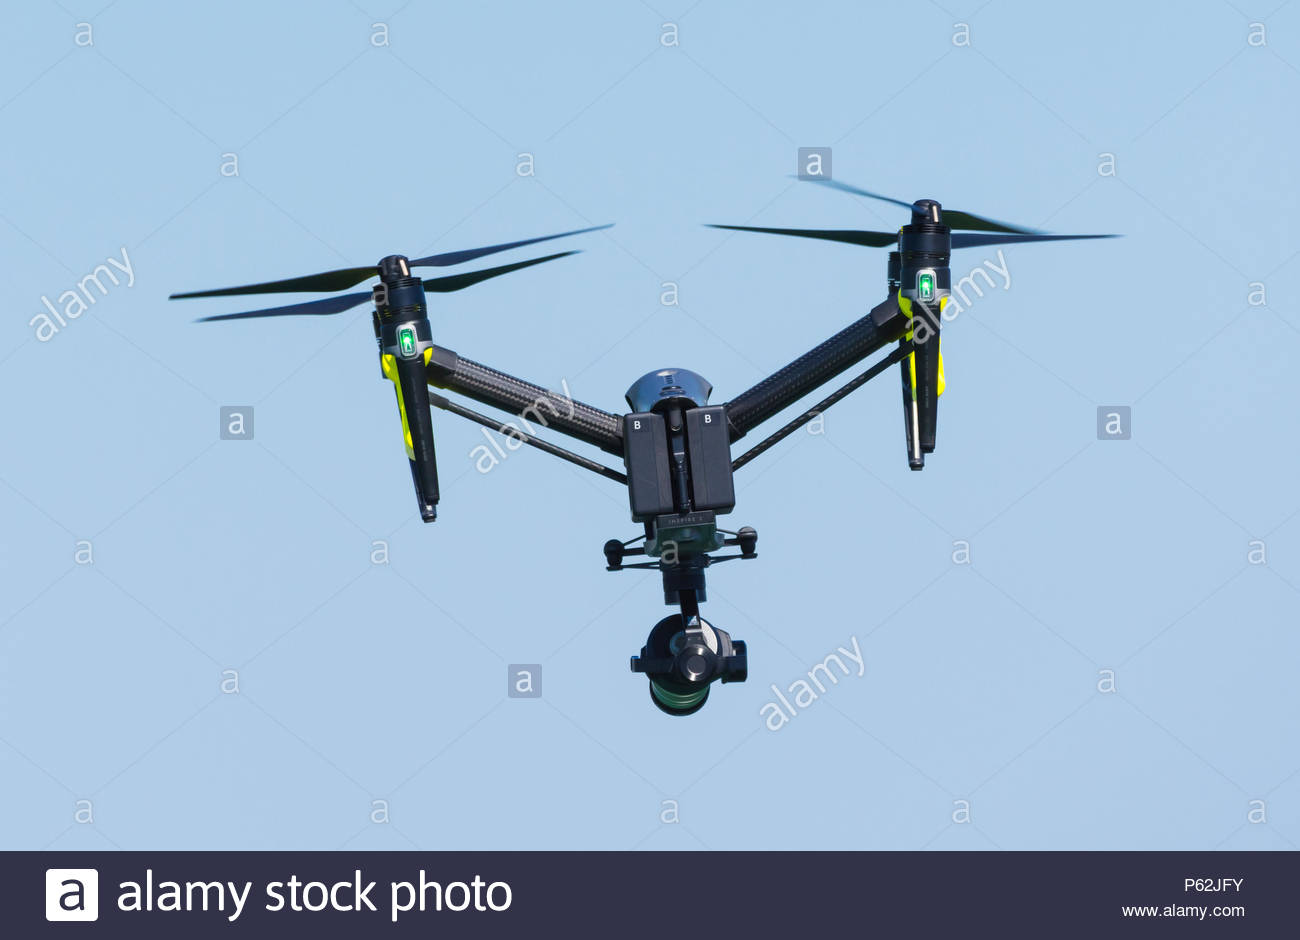 DJI Inspire 2 Quadcopter fitted with a video camera flying against blue sky in the UK. - Stock Image